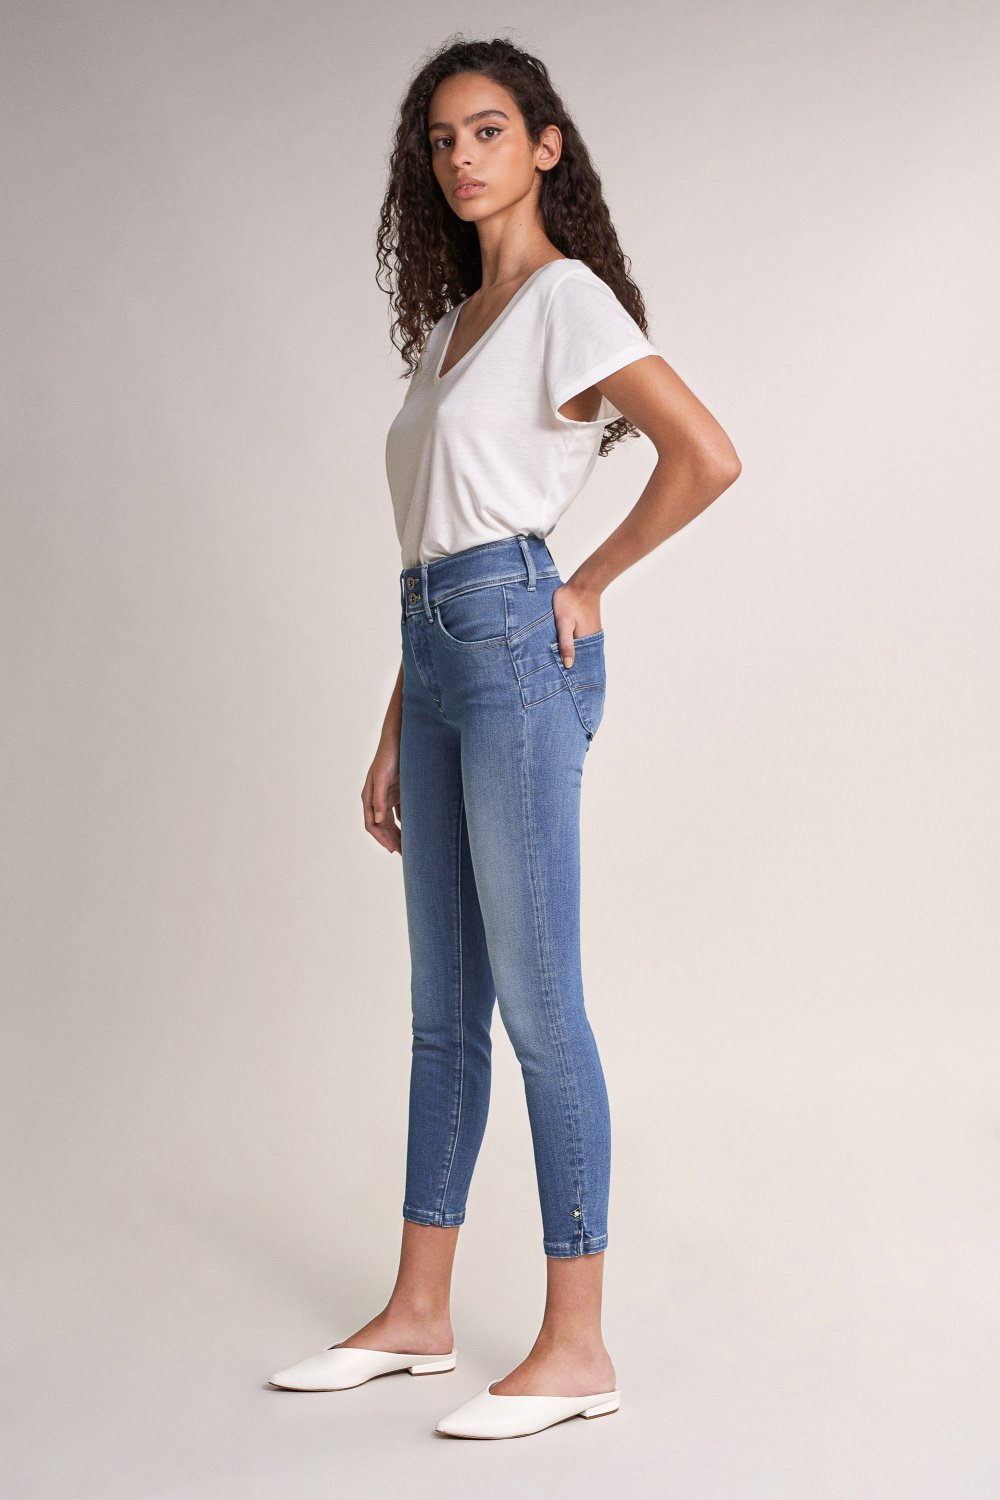 Push In Secret capri jeans with detail on hem - Salsa